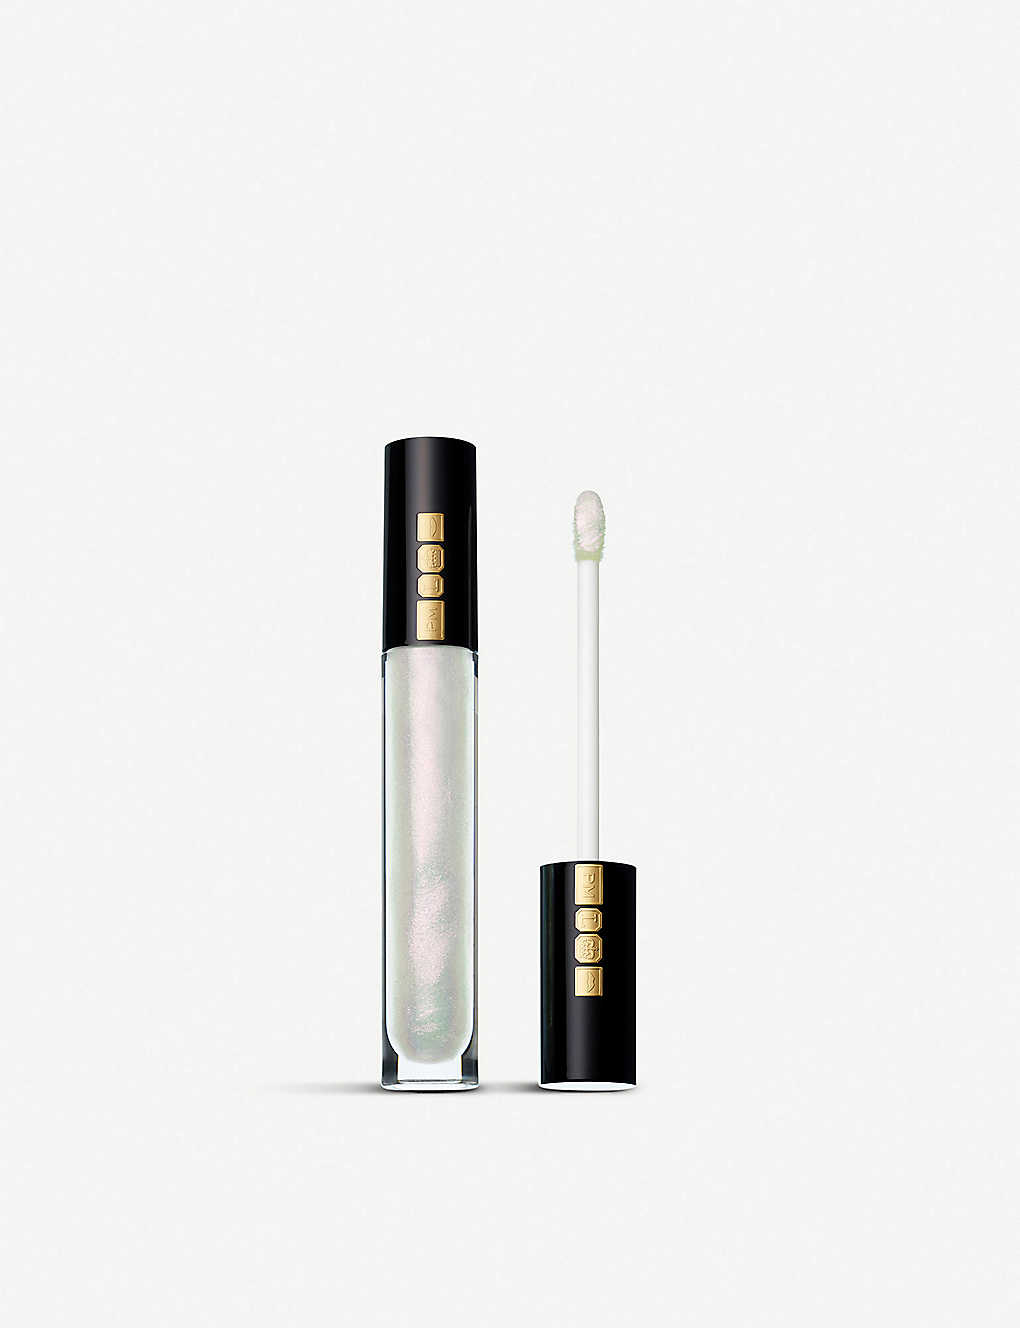 PAT MCGRATH LABS: LUST: Lip Gloss